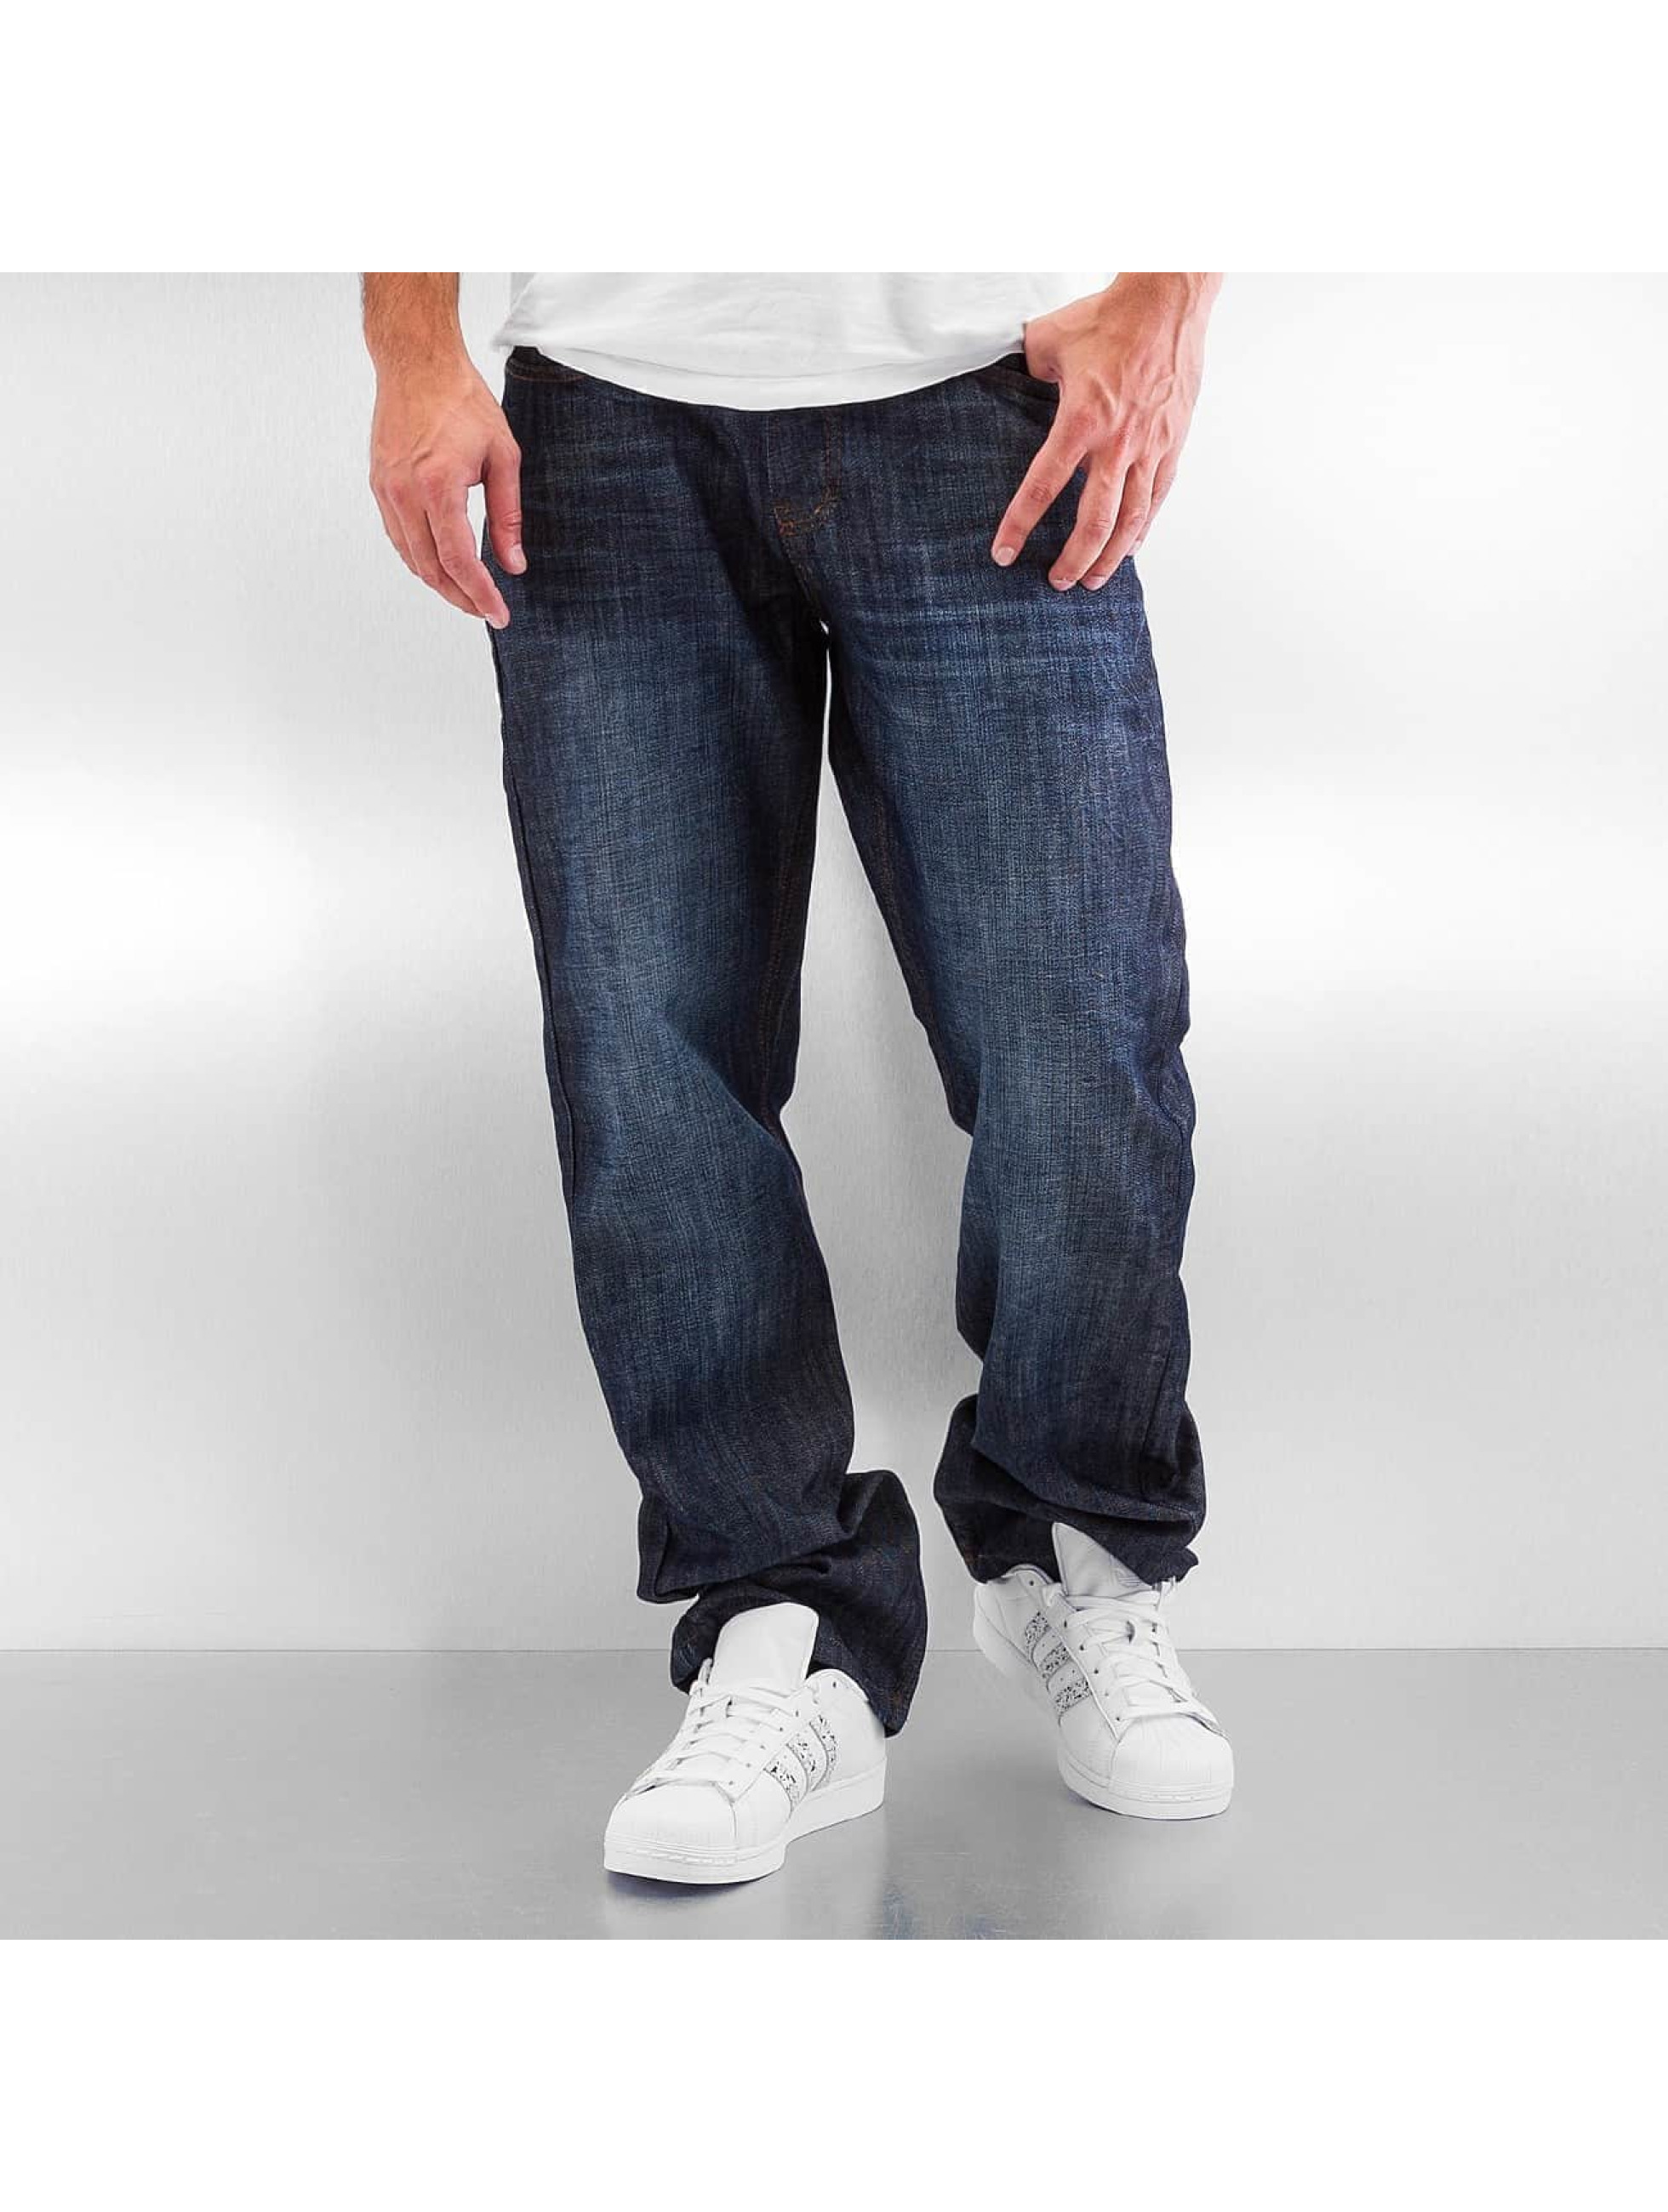 Rocawear / Loose Fit Jeans Tap in blue W 40